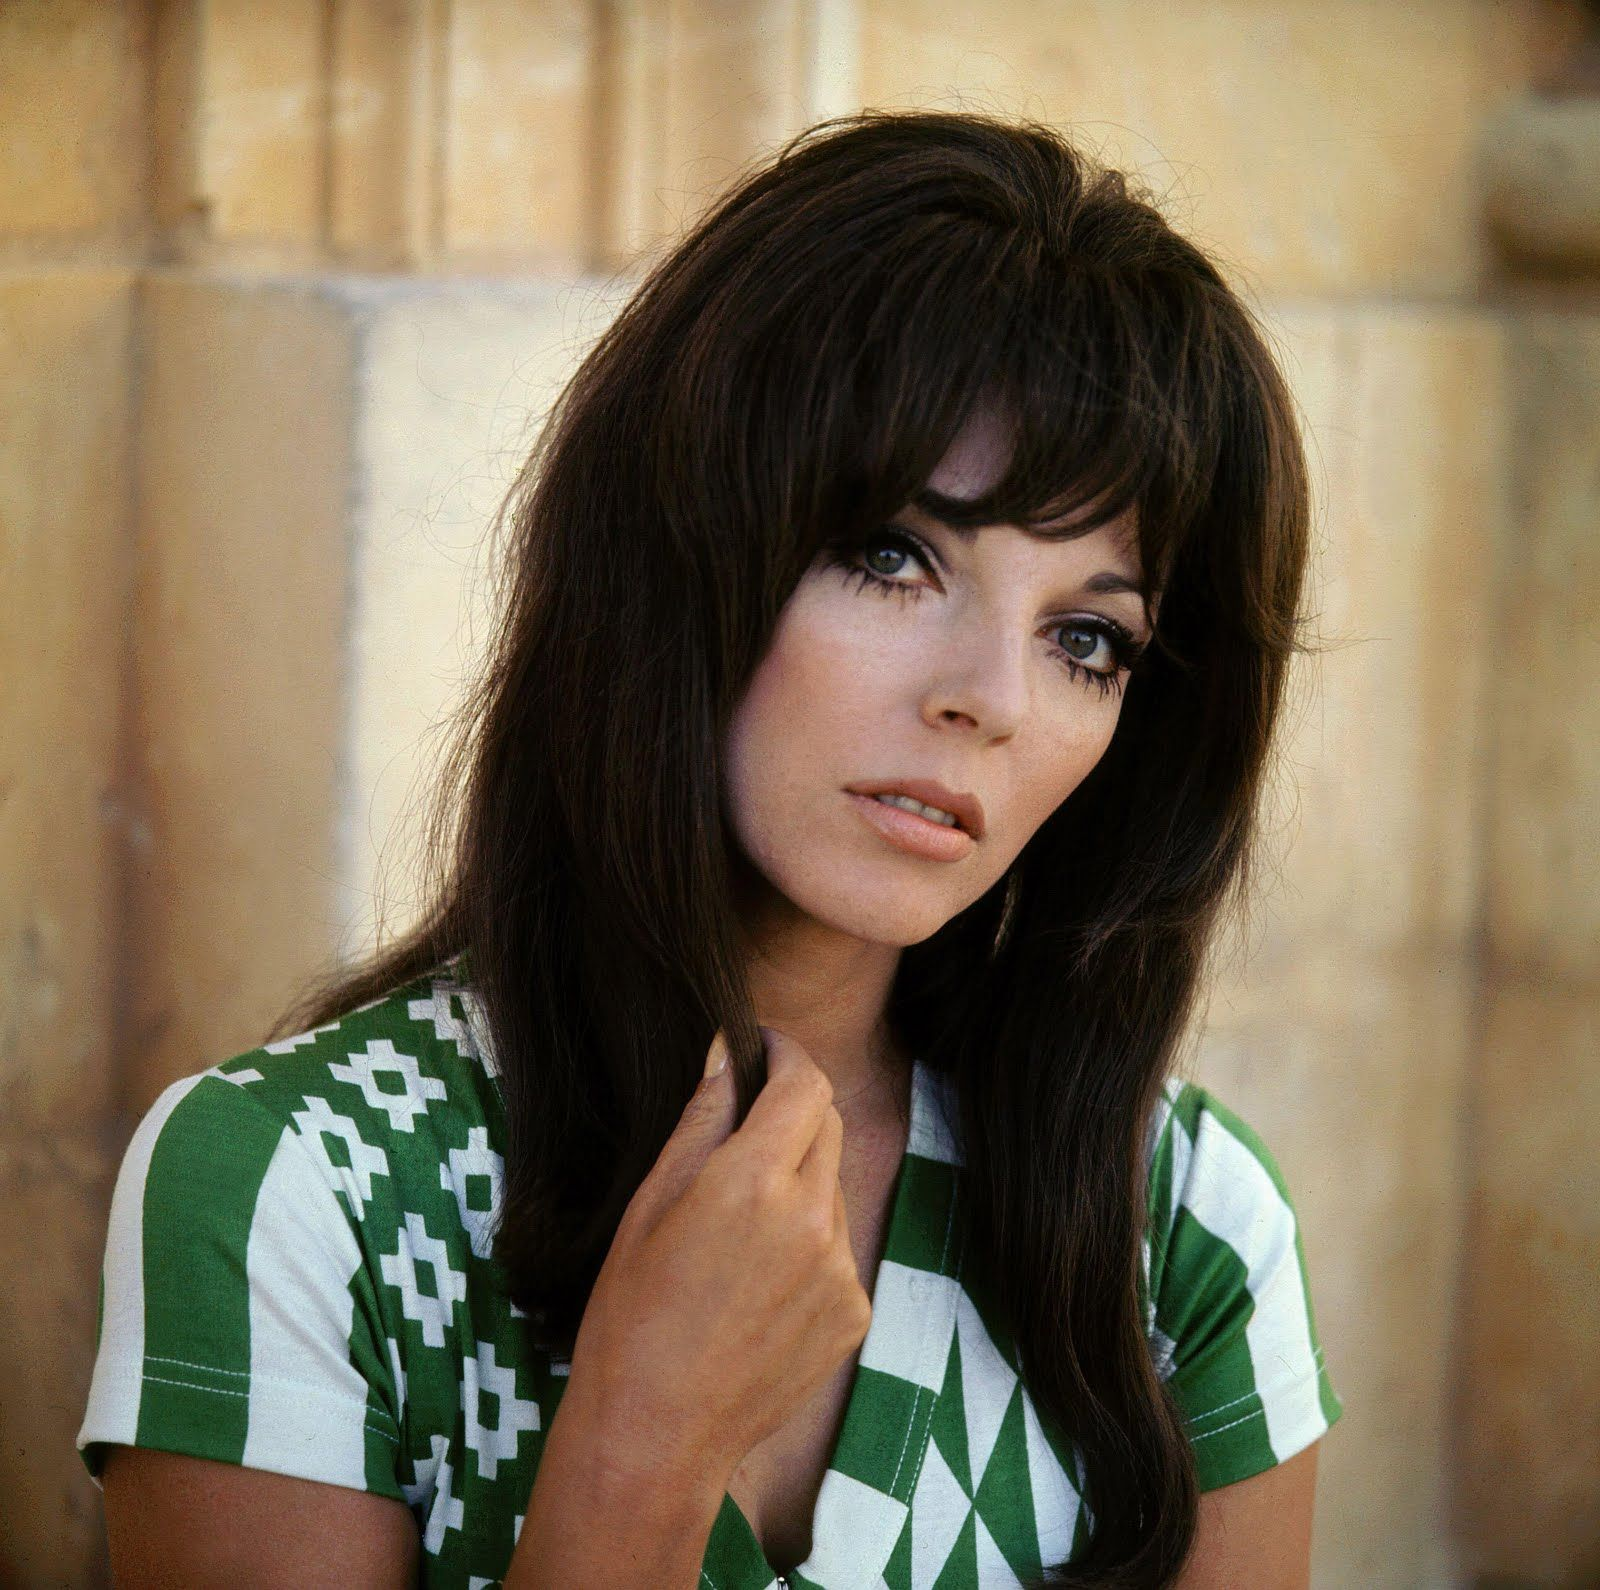 Joan Collins Young  Just To Wish Everyone A Happy St Patricks Day  Hollywood In 2019 -2269